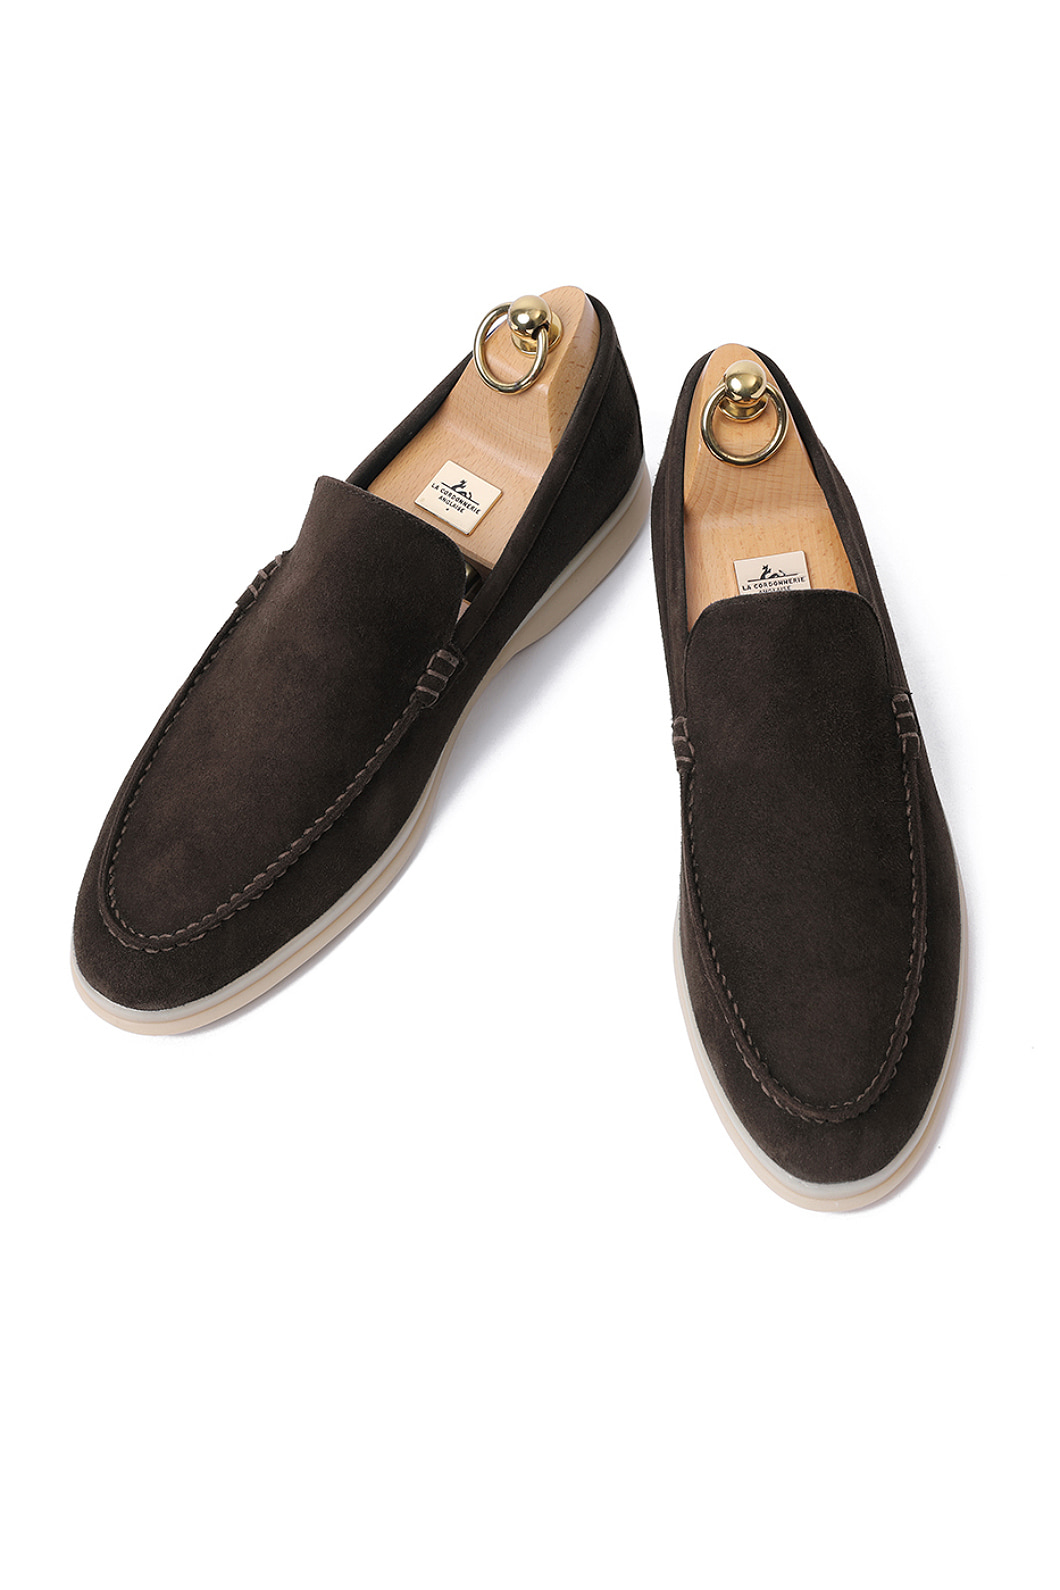 LOWER SUEDE LOAFER-DARK BROWNITALY Leather  265 size 당일 발송!